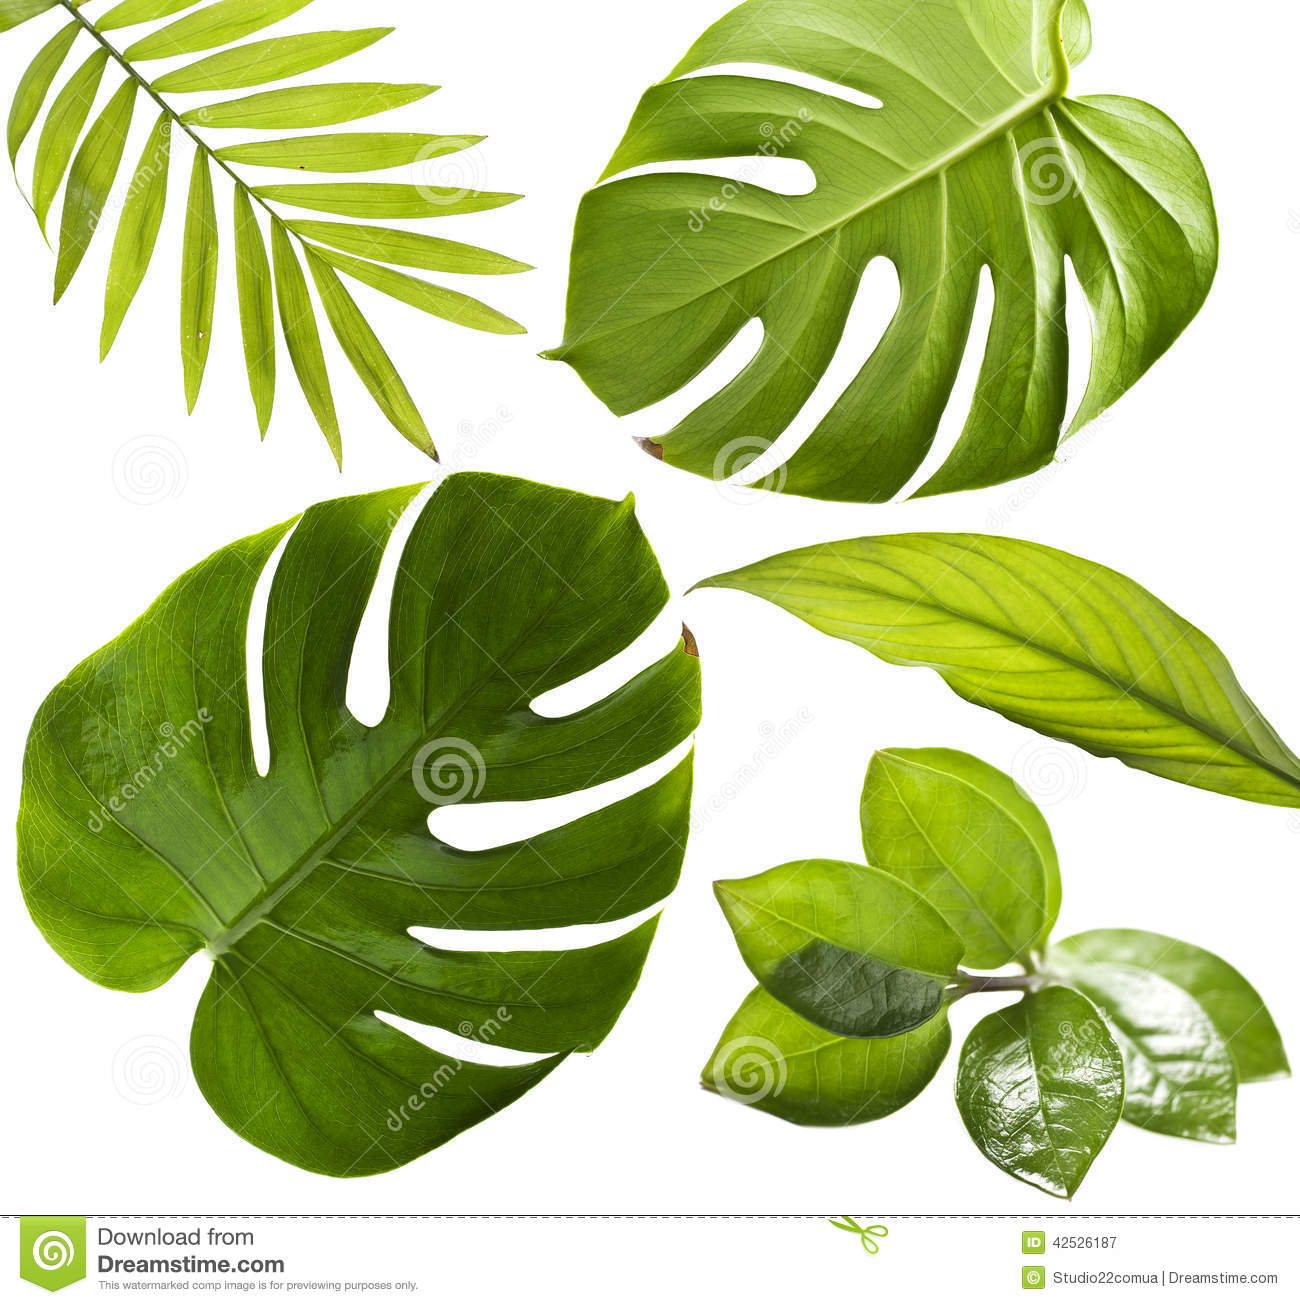 Tropical Leaves Stock Image Image Of Plants, Juicy, Bush